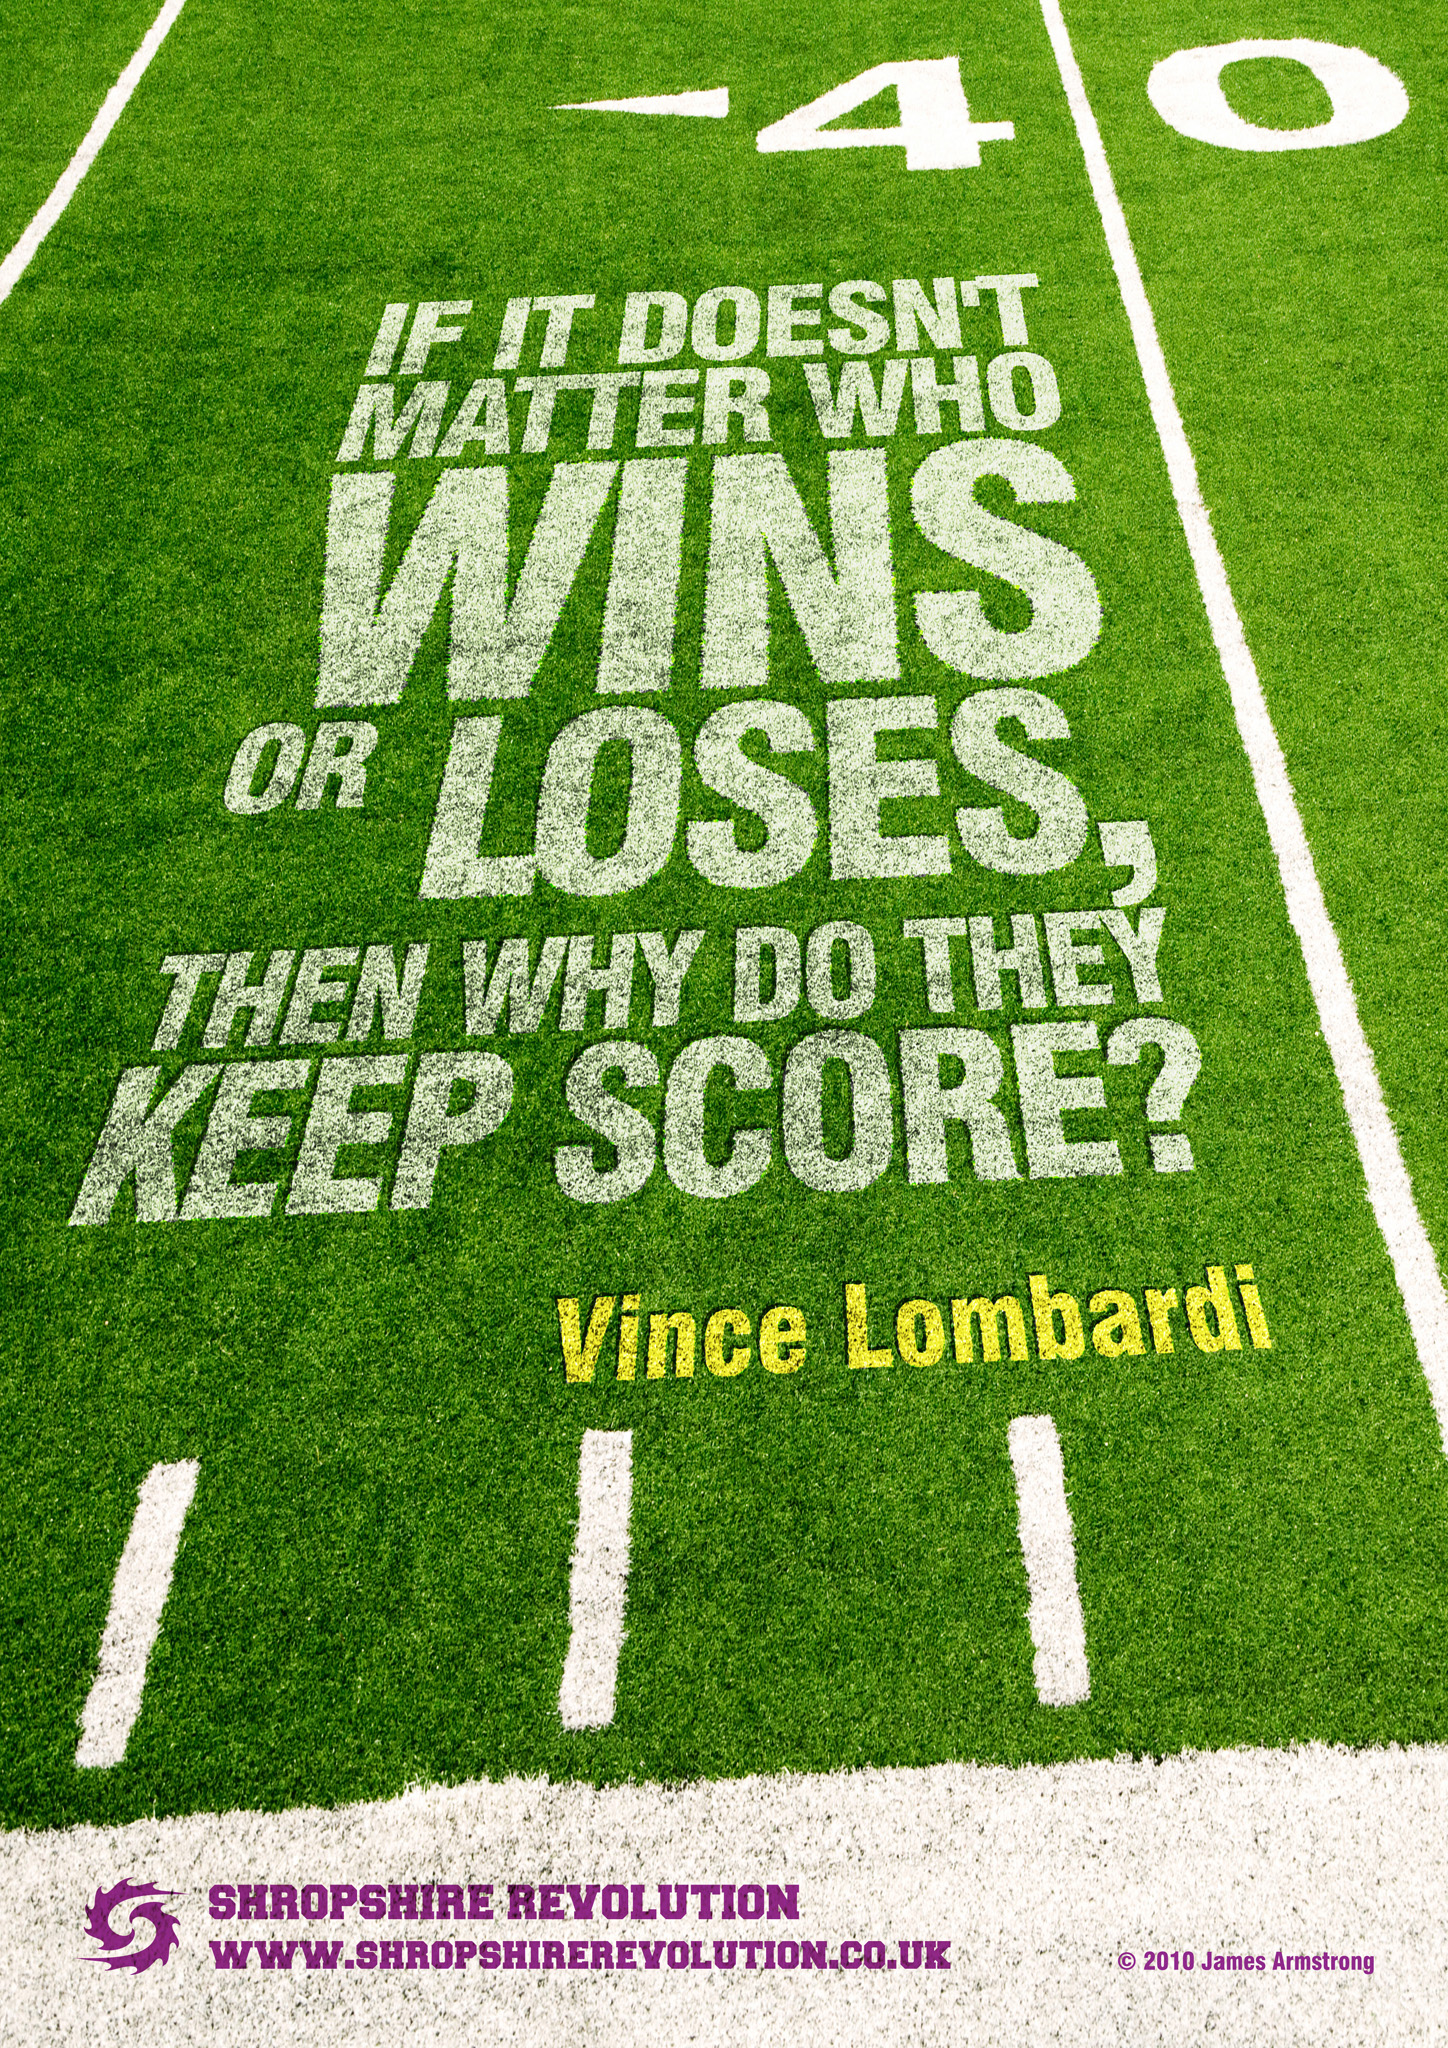 A-poster-design-for-American-Football-team-Shropshire-Revolution-quote-by-Vince-Lombardi-wallpaper-wp5803223